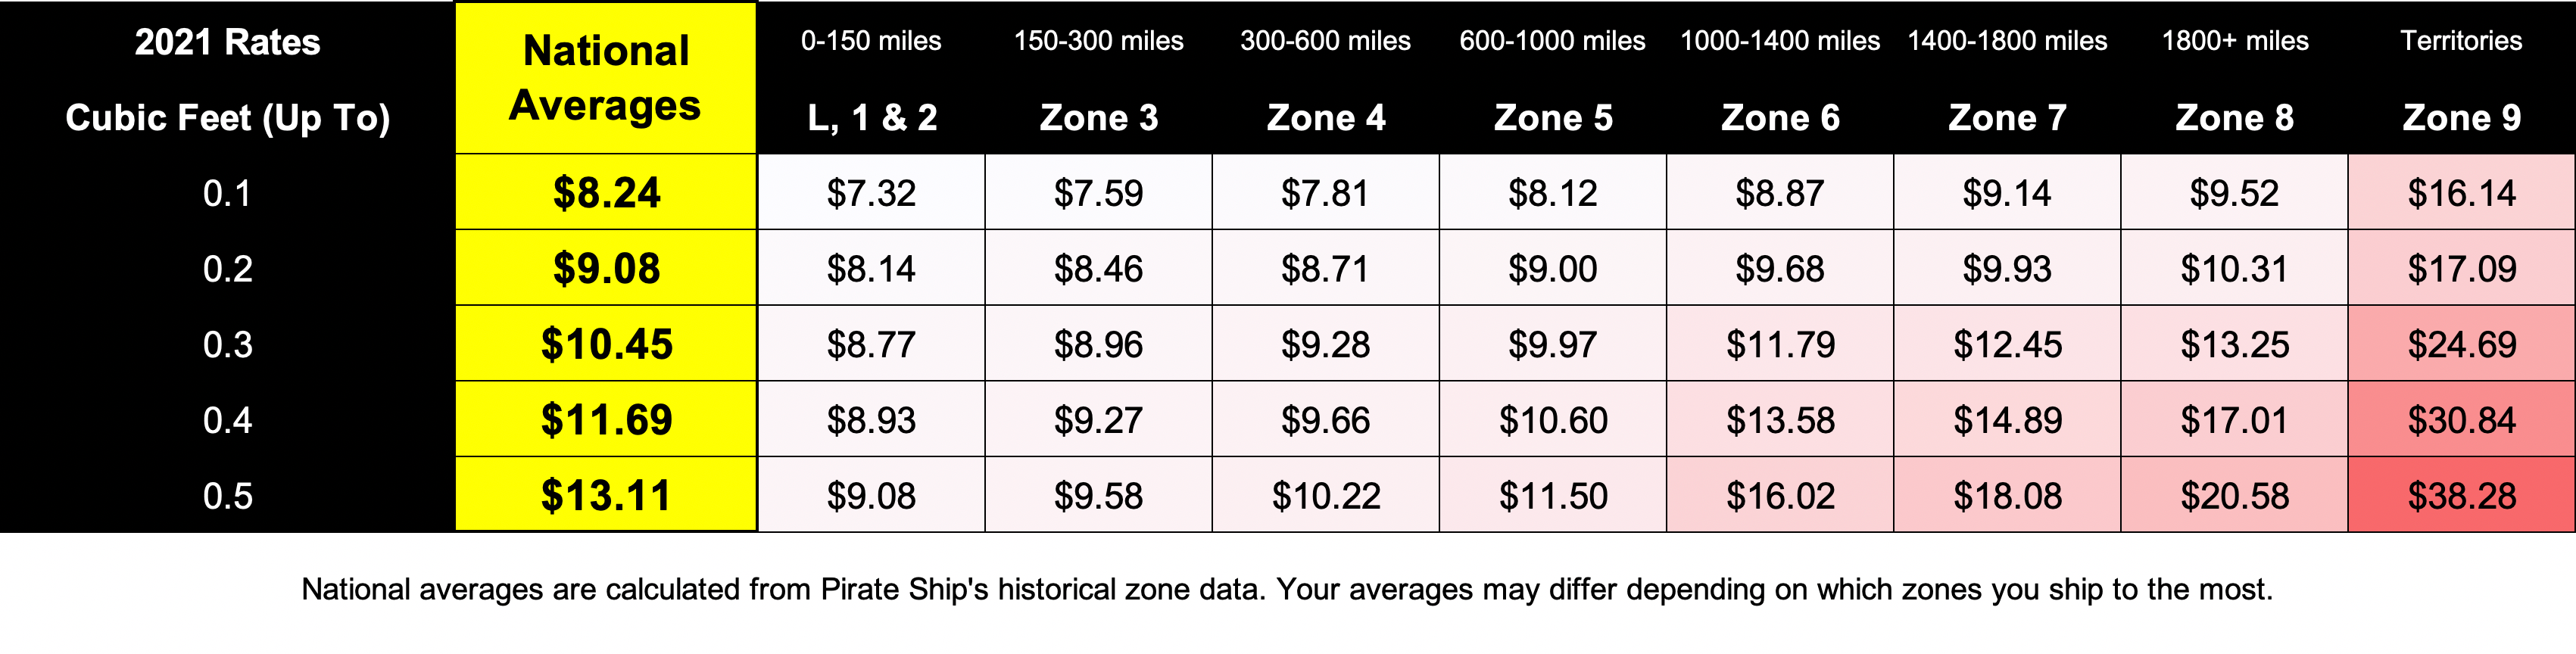 A screenshot showing the 2021 USPS rates for Priority Mail Cubic Softpack